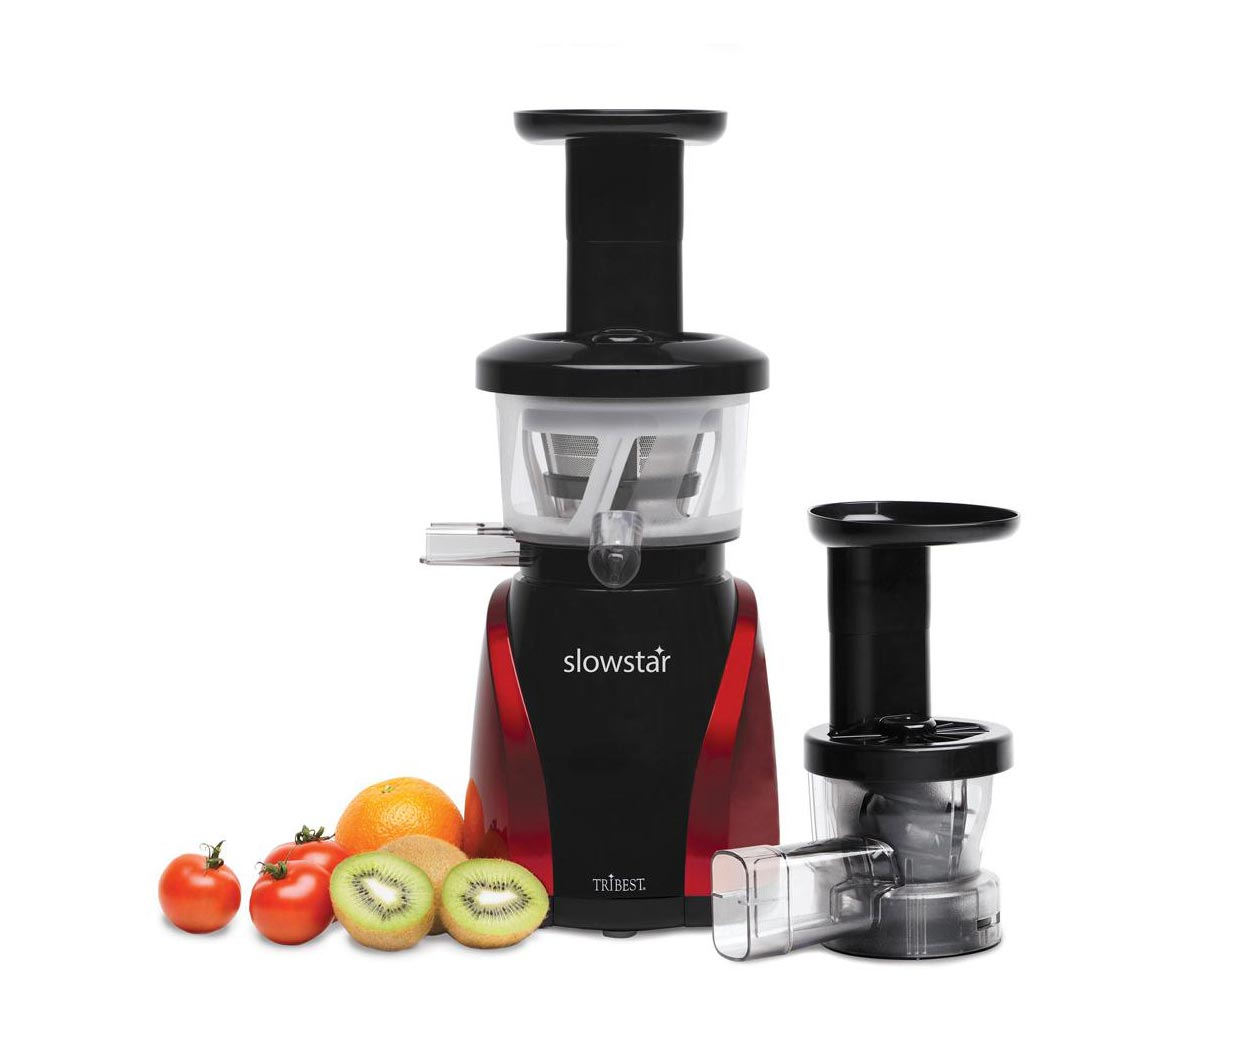 Slow Juicer Reviews 2018 : Tribest Slowstar Juicer Review. Is this Tribest juicer the best juicer to buy?